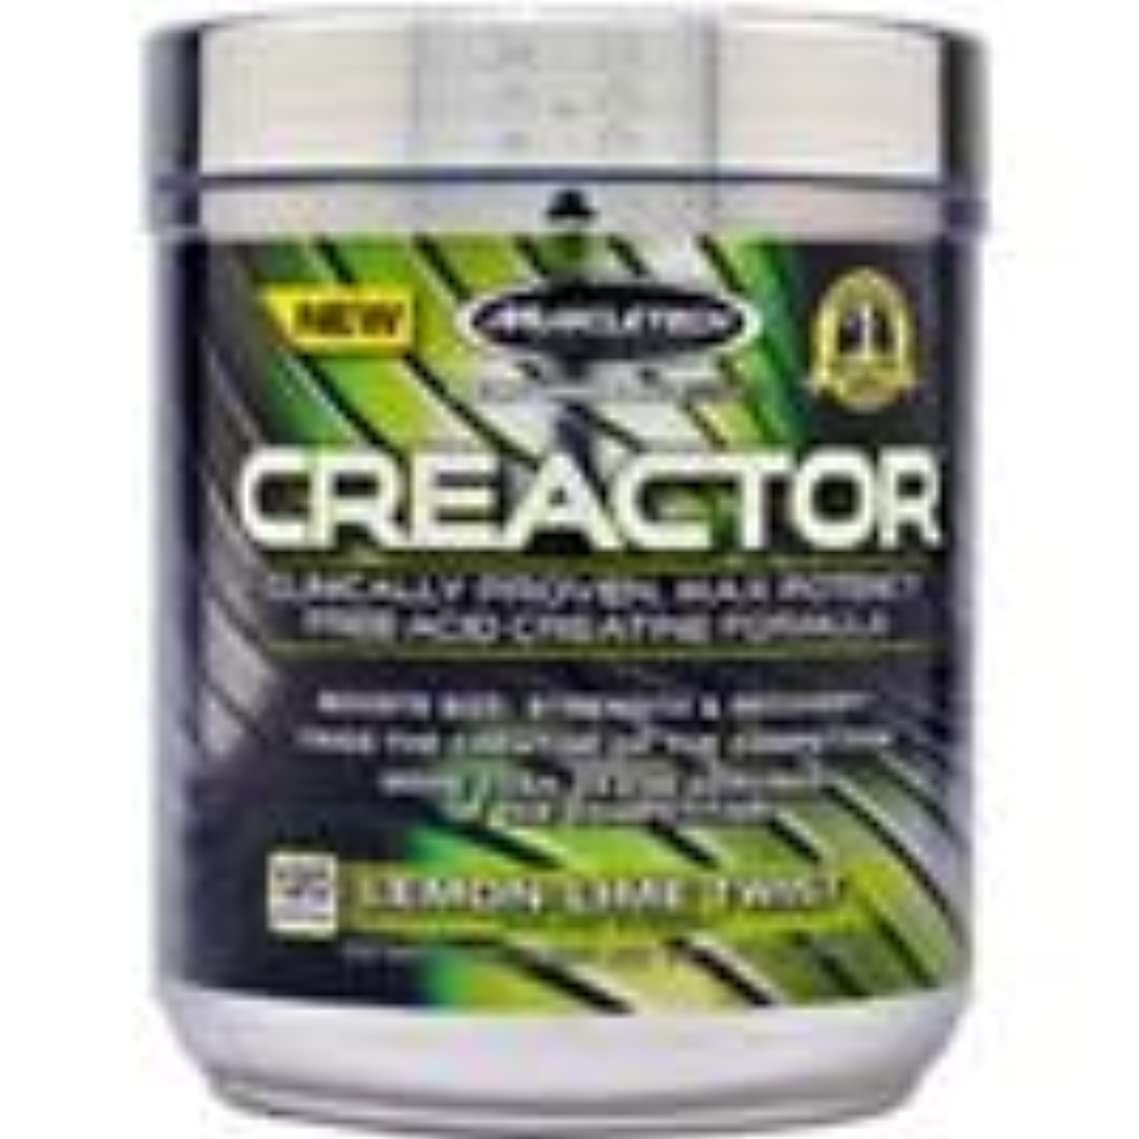 懐疑論タクト不正直MuscleTech Creactor 120 Servings Lemon-Lime Twist [並行輸入品]